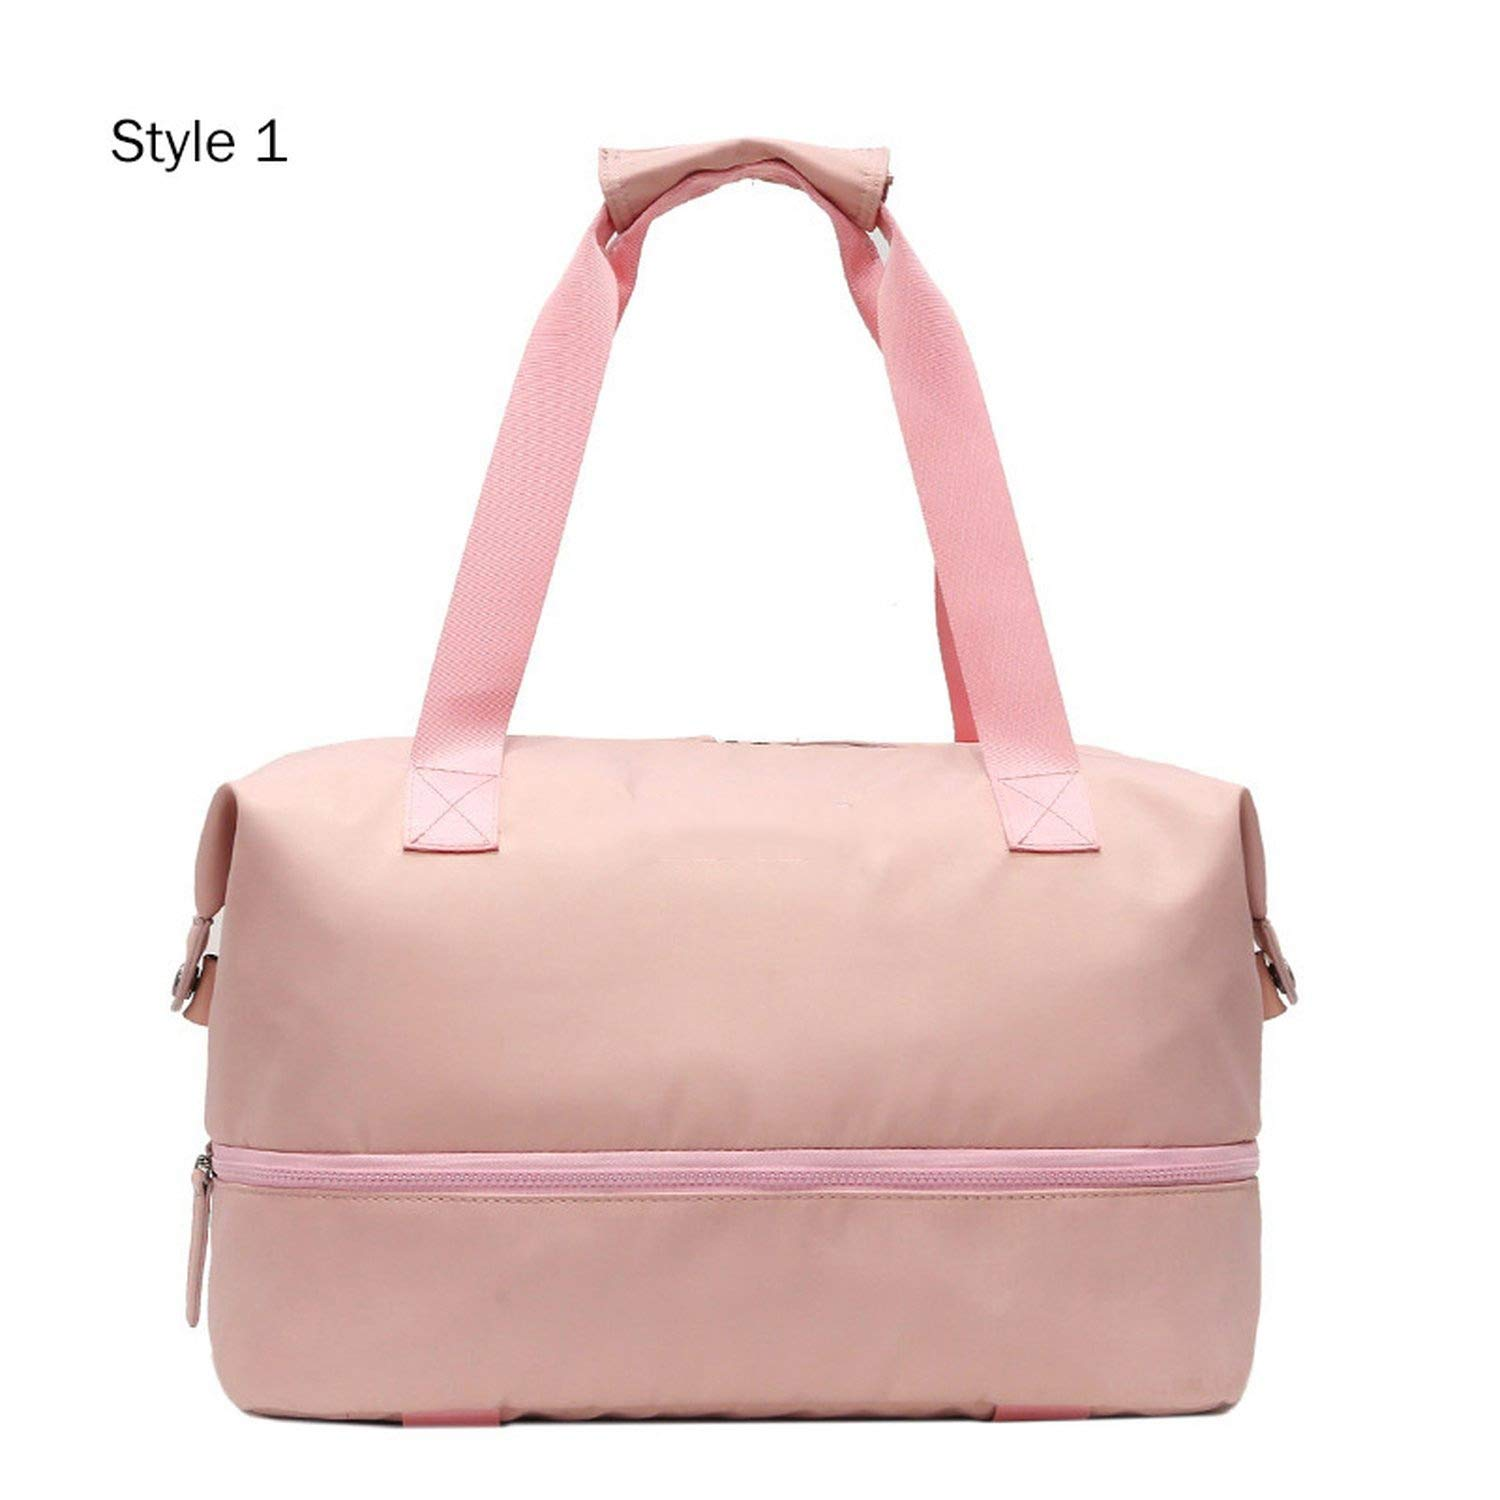 Sports Gym Fitness Dry Wet Separation Yoga Bag Travel Handbags Women Sport Luggage Duffle XA965WD,Style 1 Pink